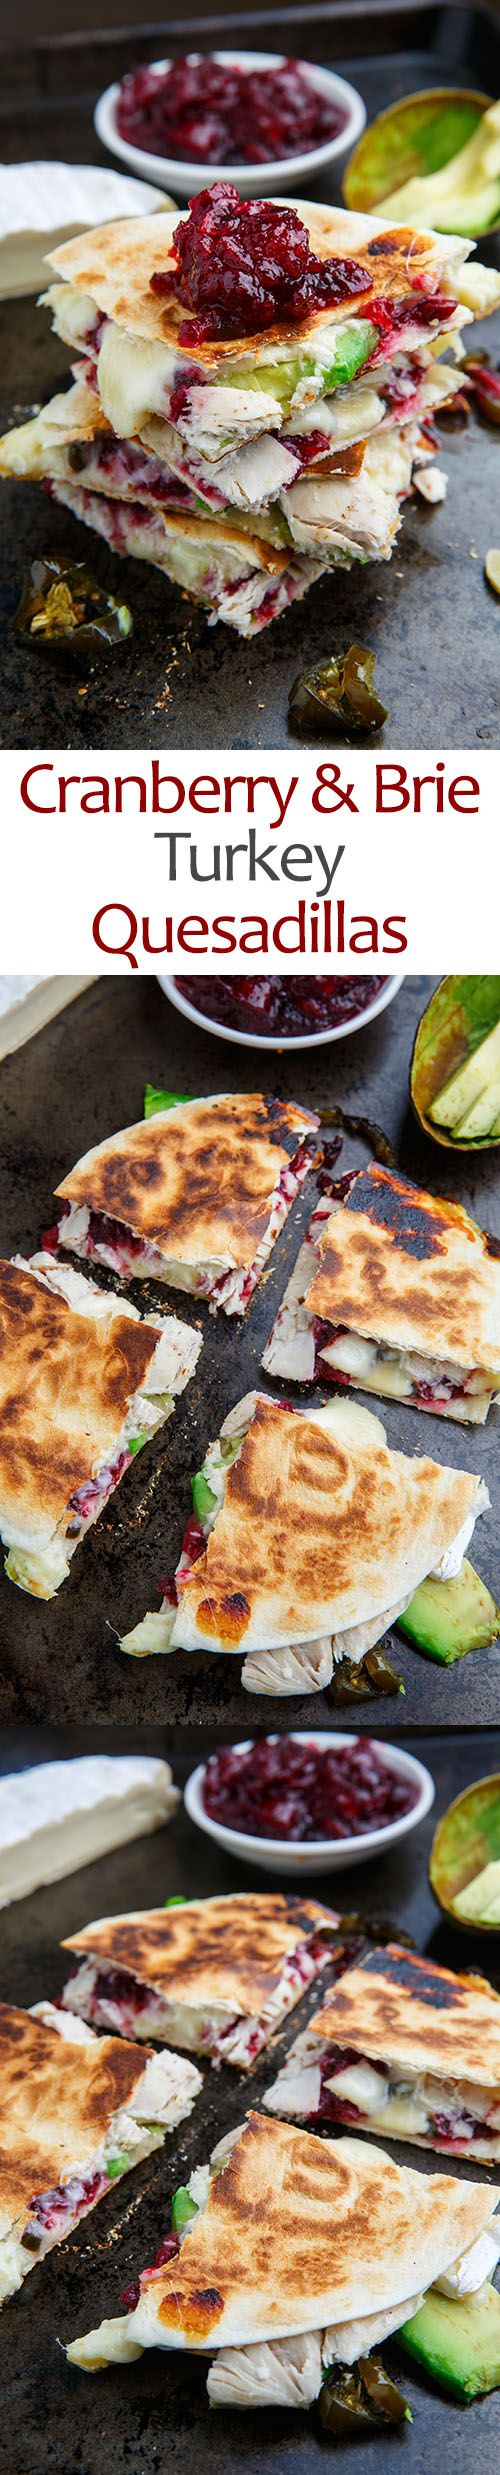 Cranberry and Brie Turkey Quesadillas with Avocado and Candied Jalapenos